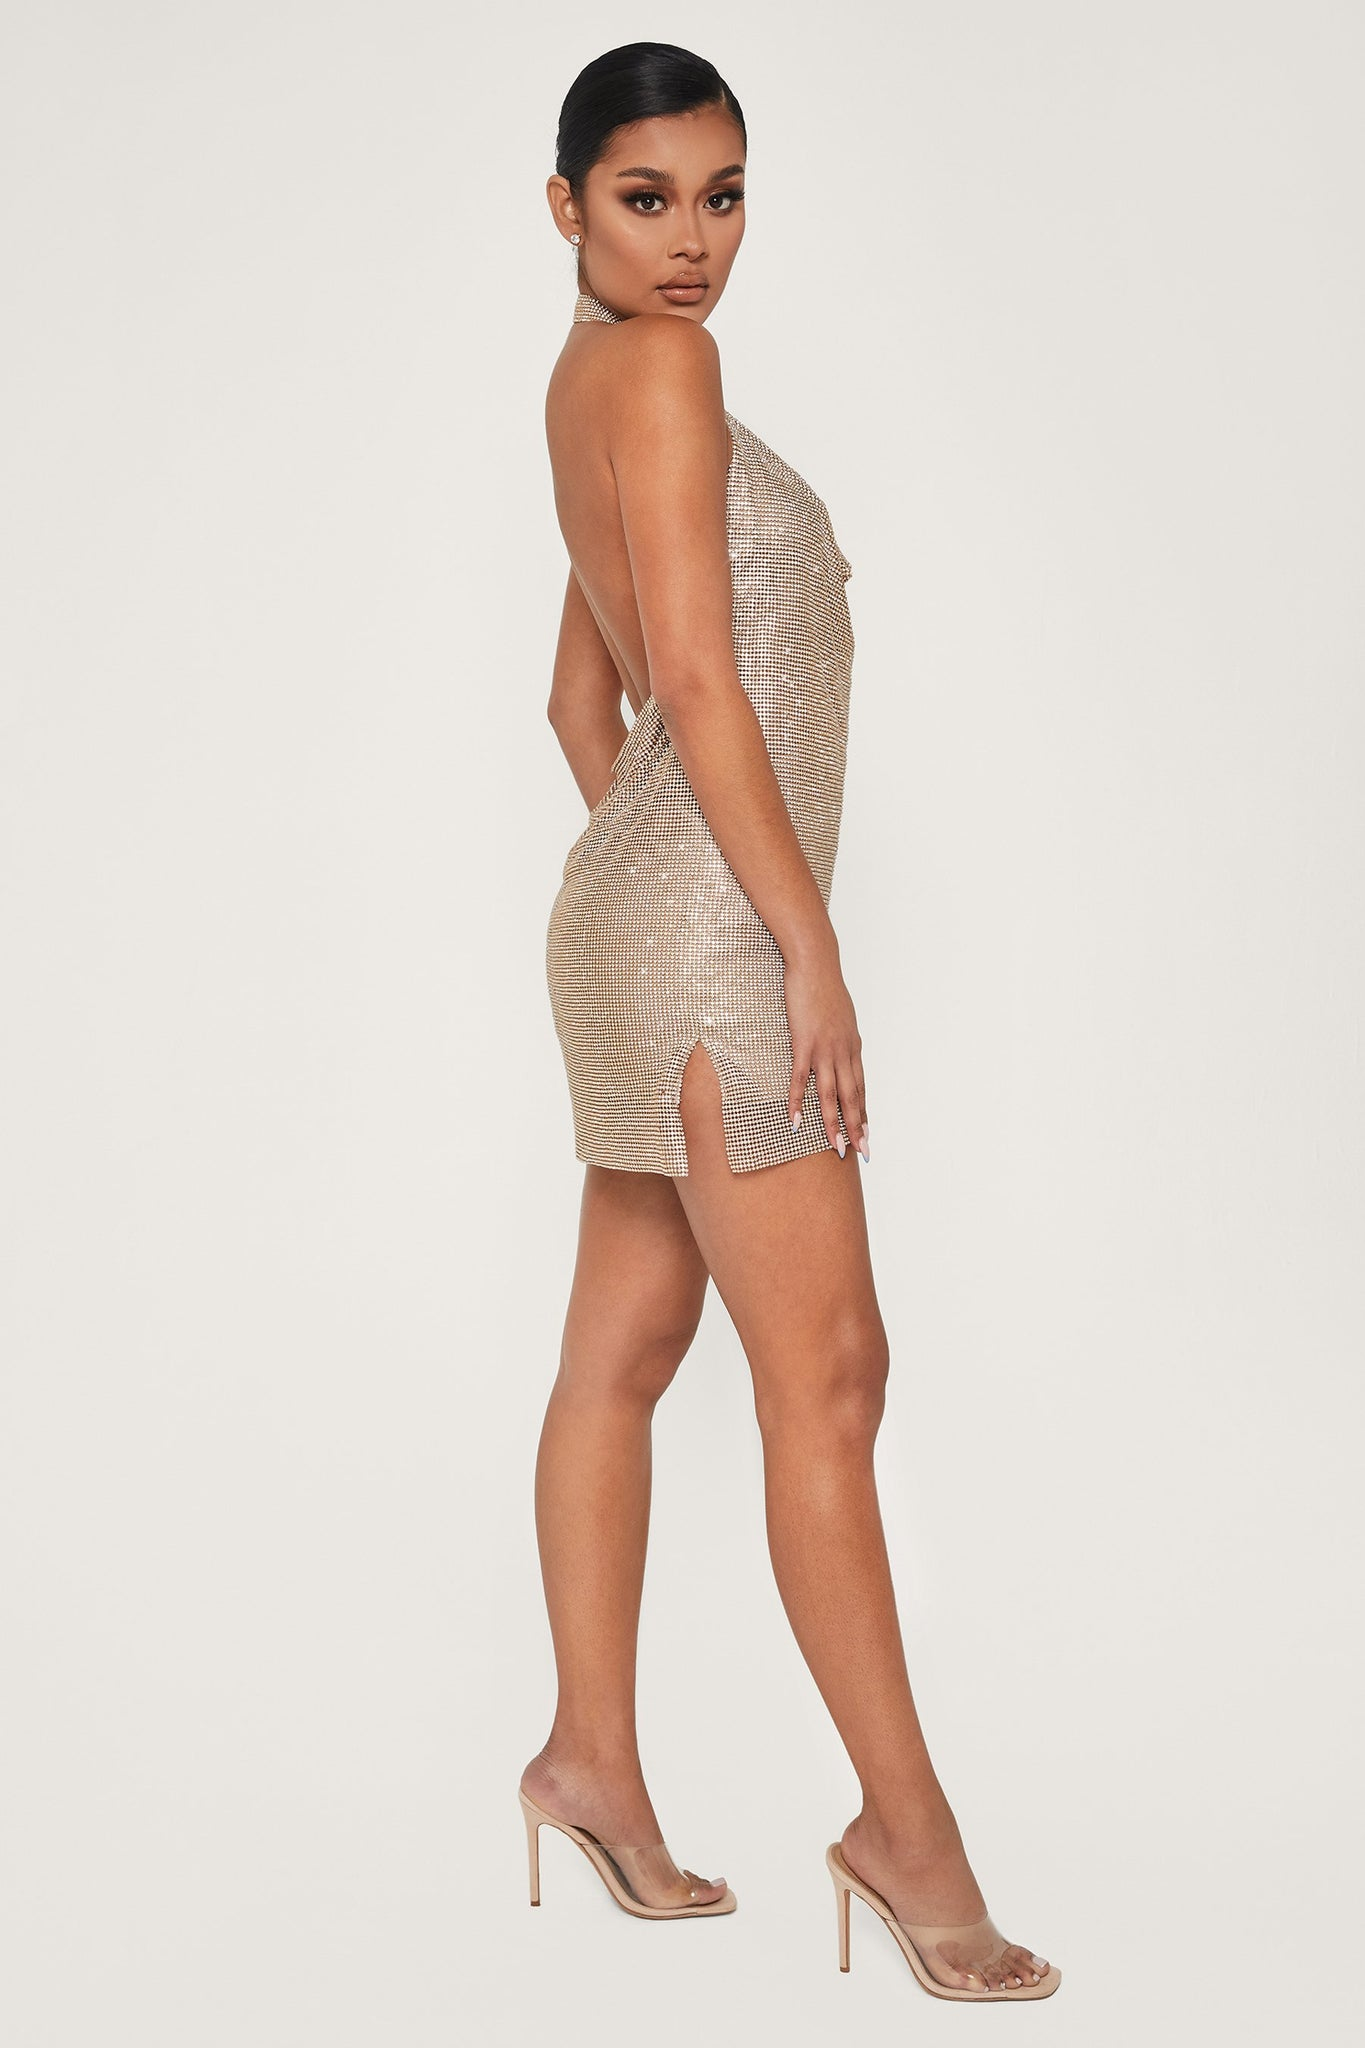 Meilani Low Back Diamante Mesh Mini Dress - Gold - MESHKI